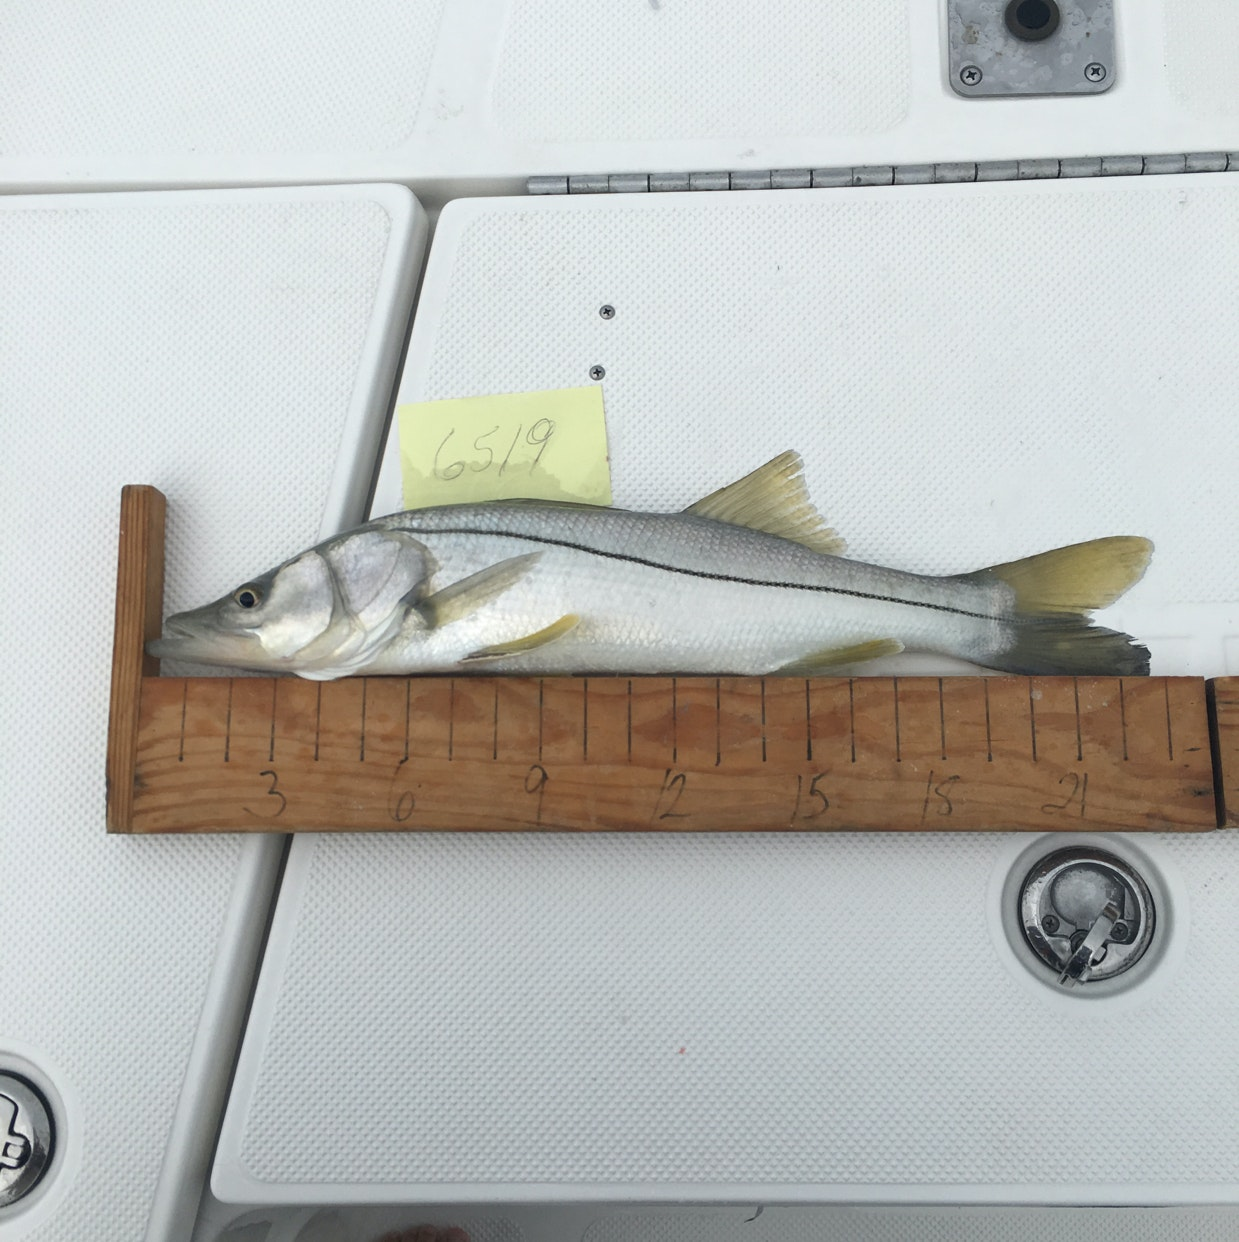 Snook day 2 musico